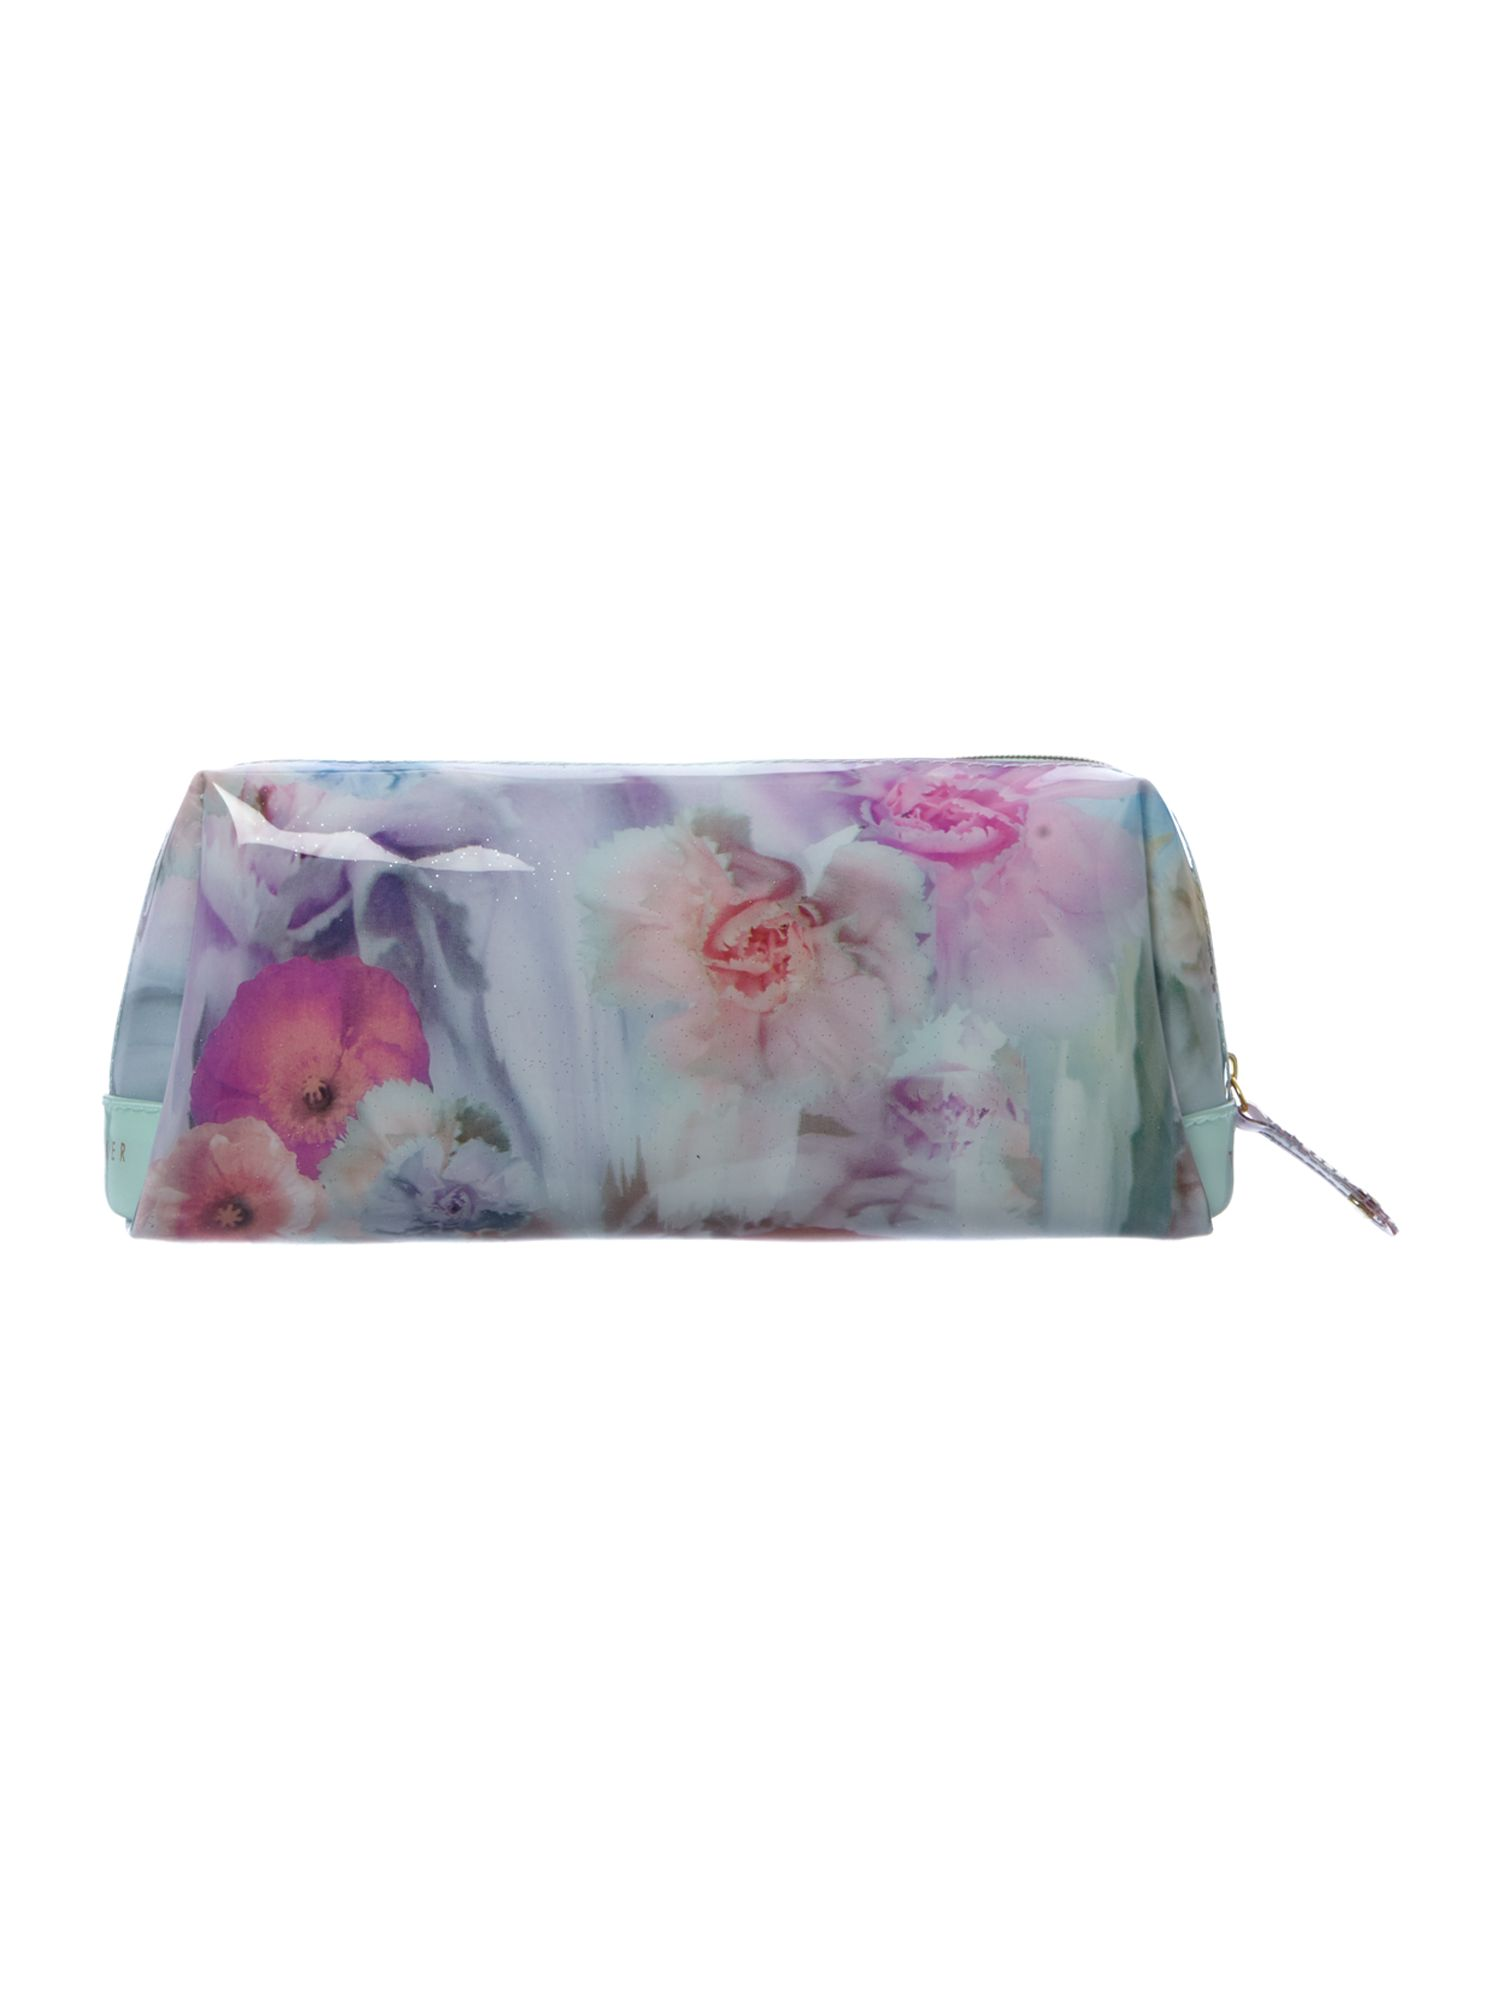 Large multi coloured wash bag